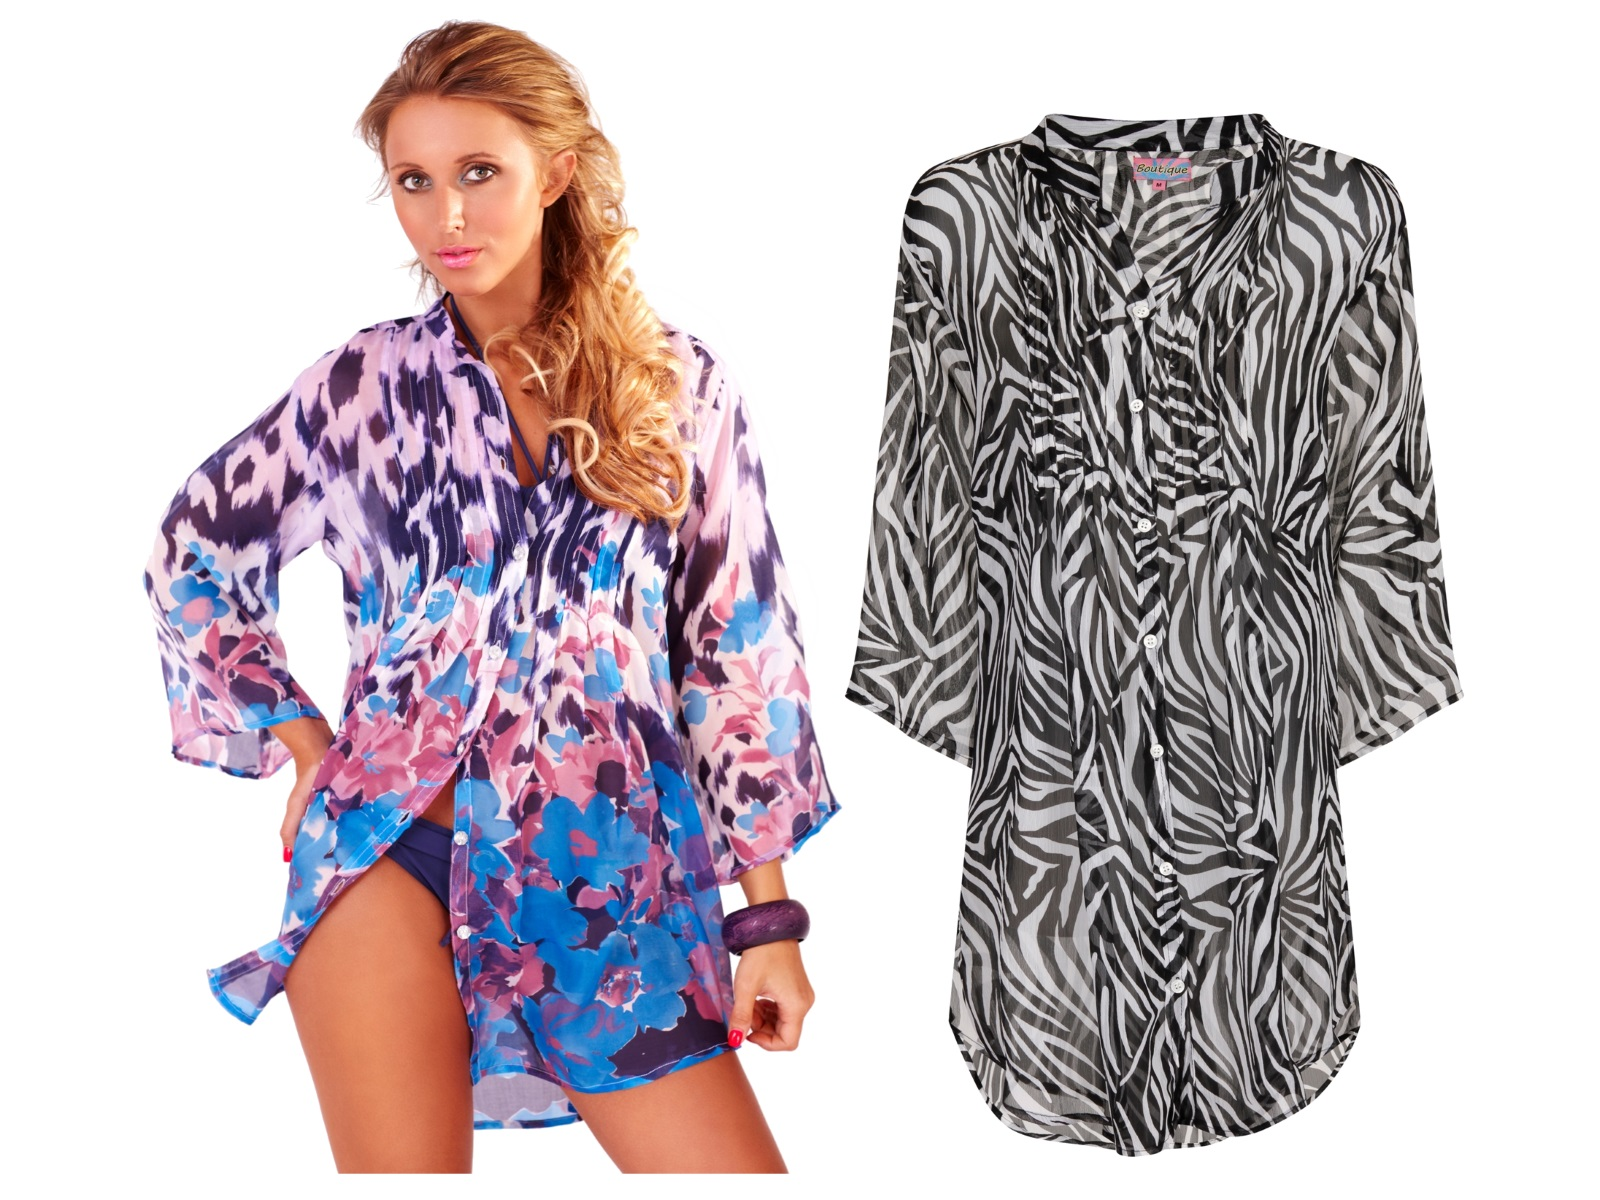 Womens Shirt Chiffon Blouse Beach Summer Cover Up Animal   Floral Size UK  6-16 bbb21703c6